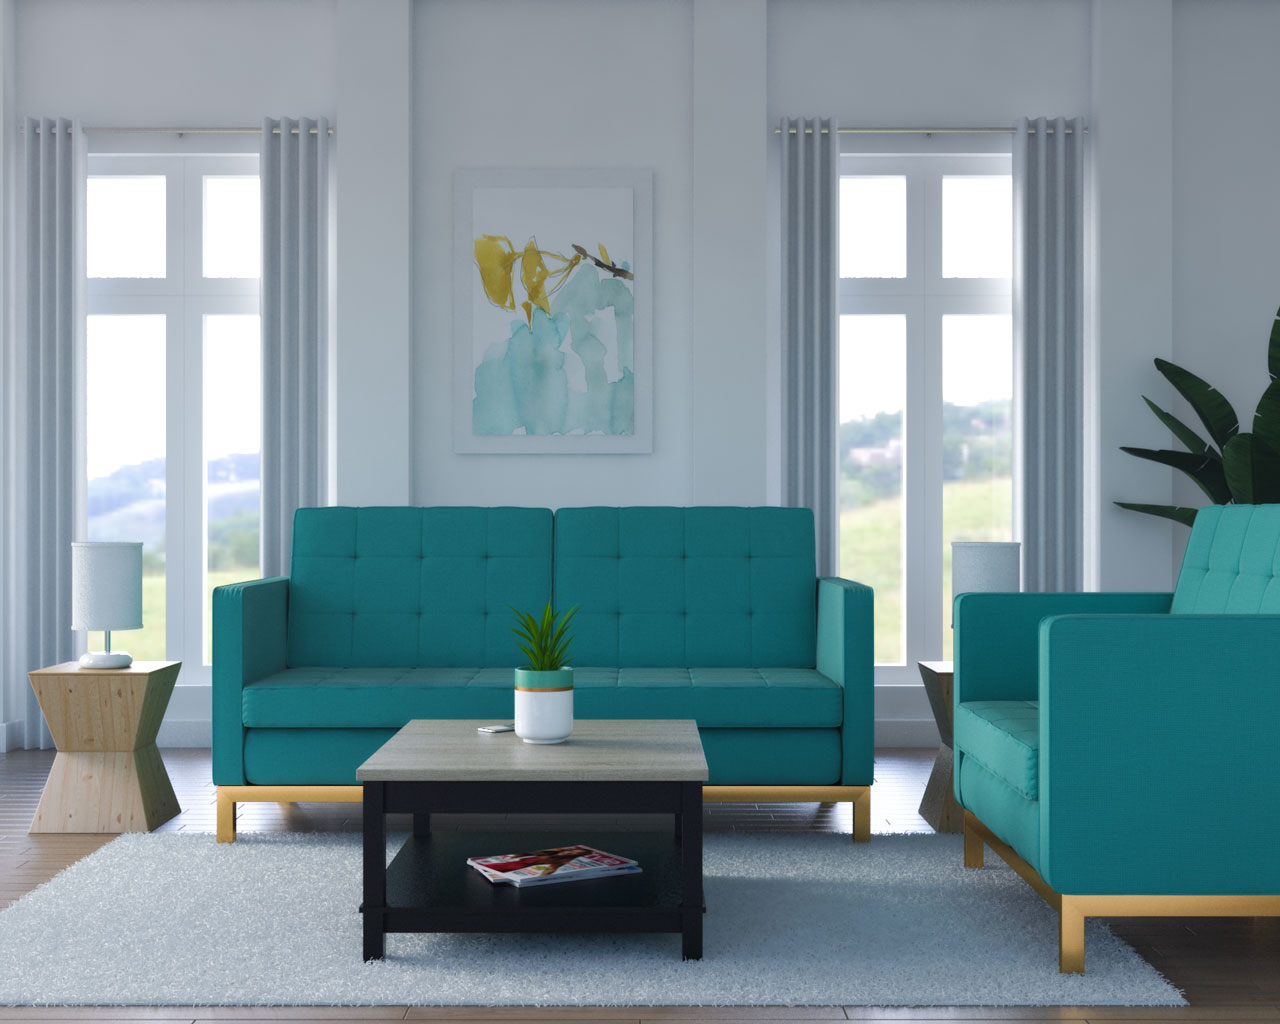 White walls with teal furniture